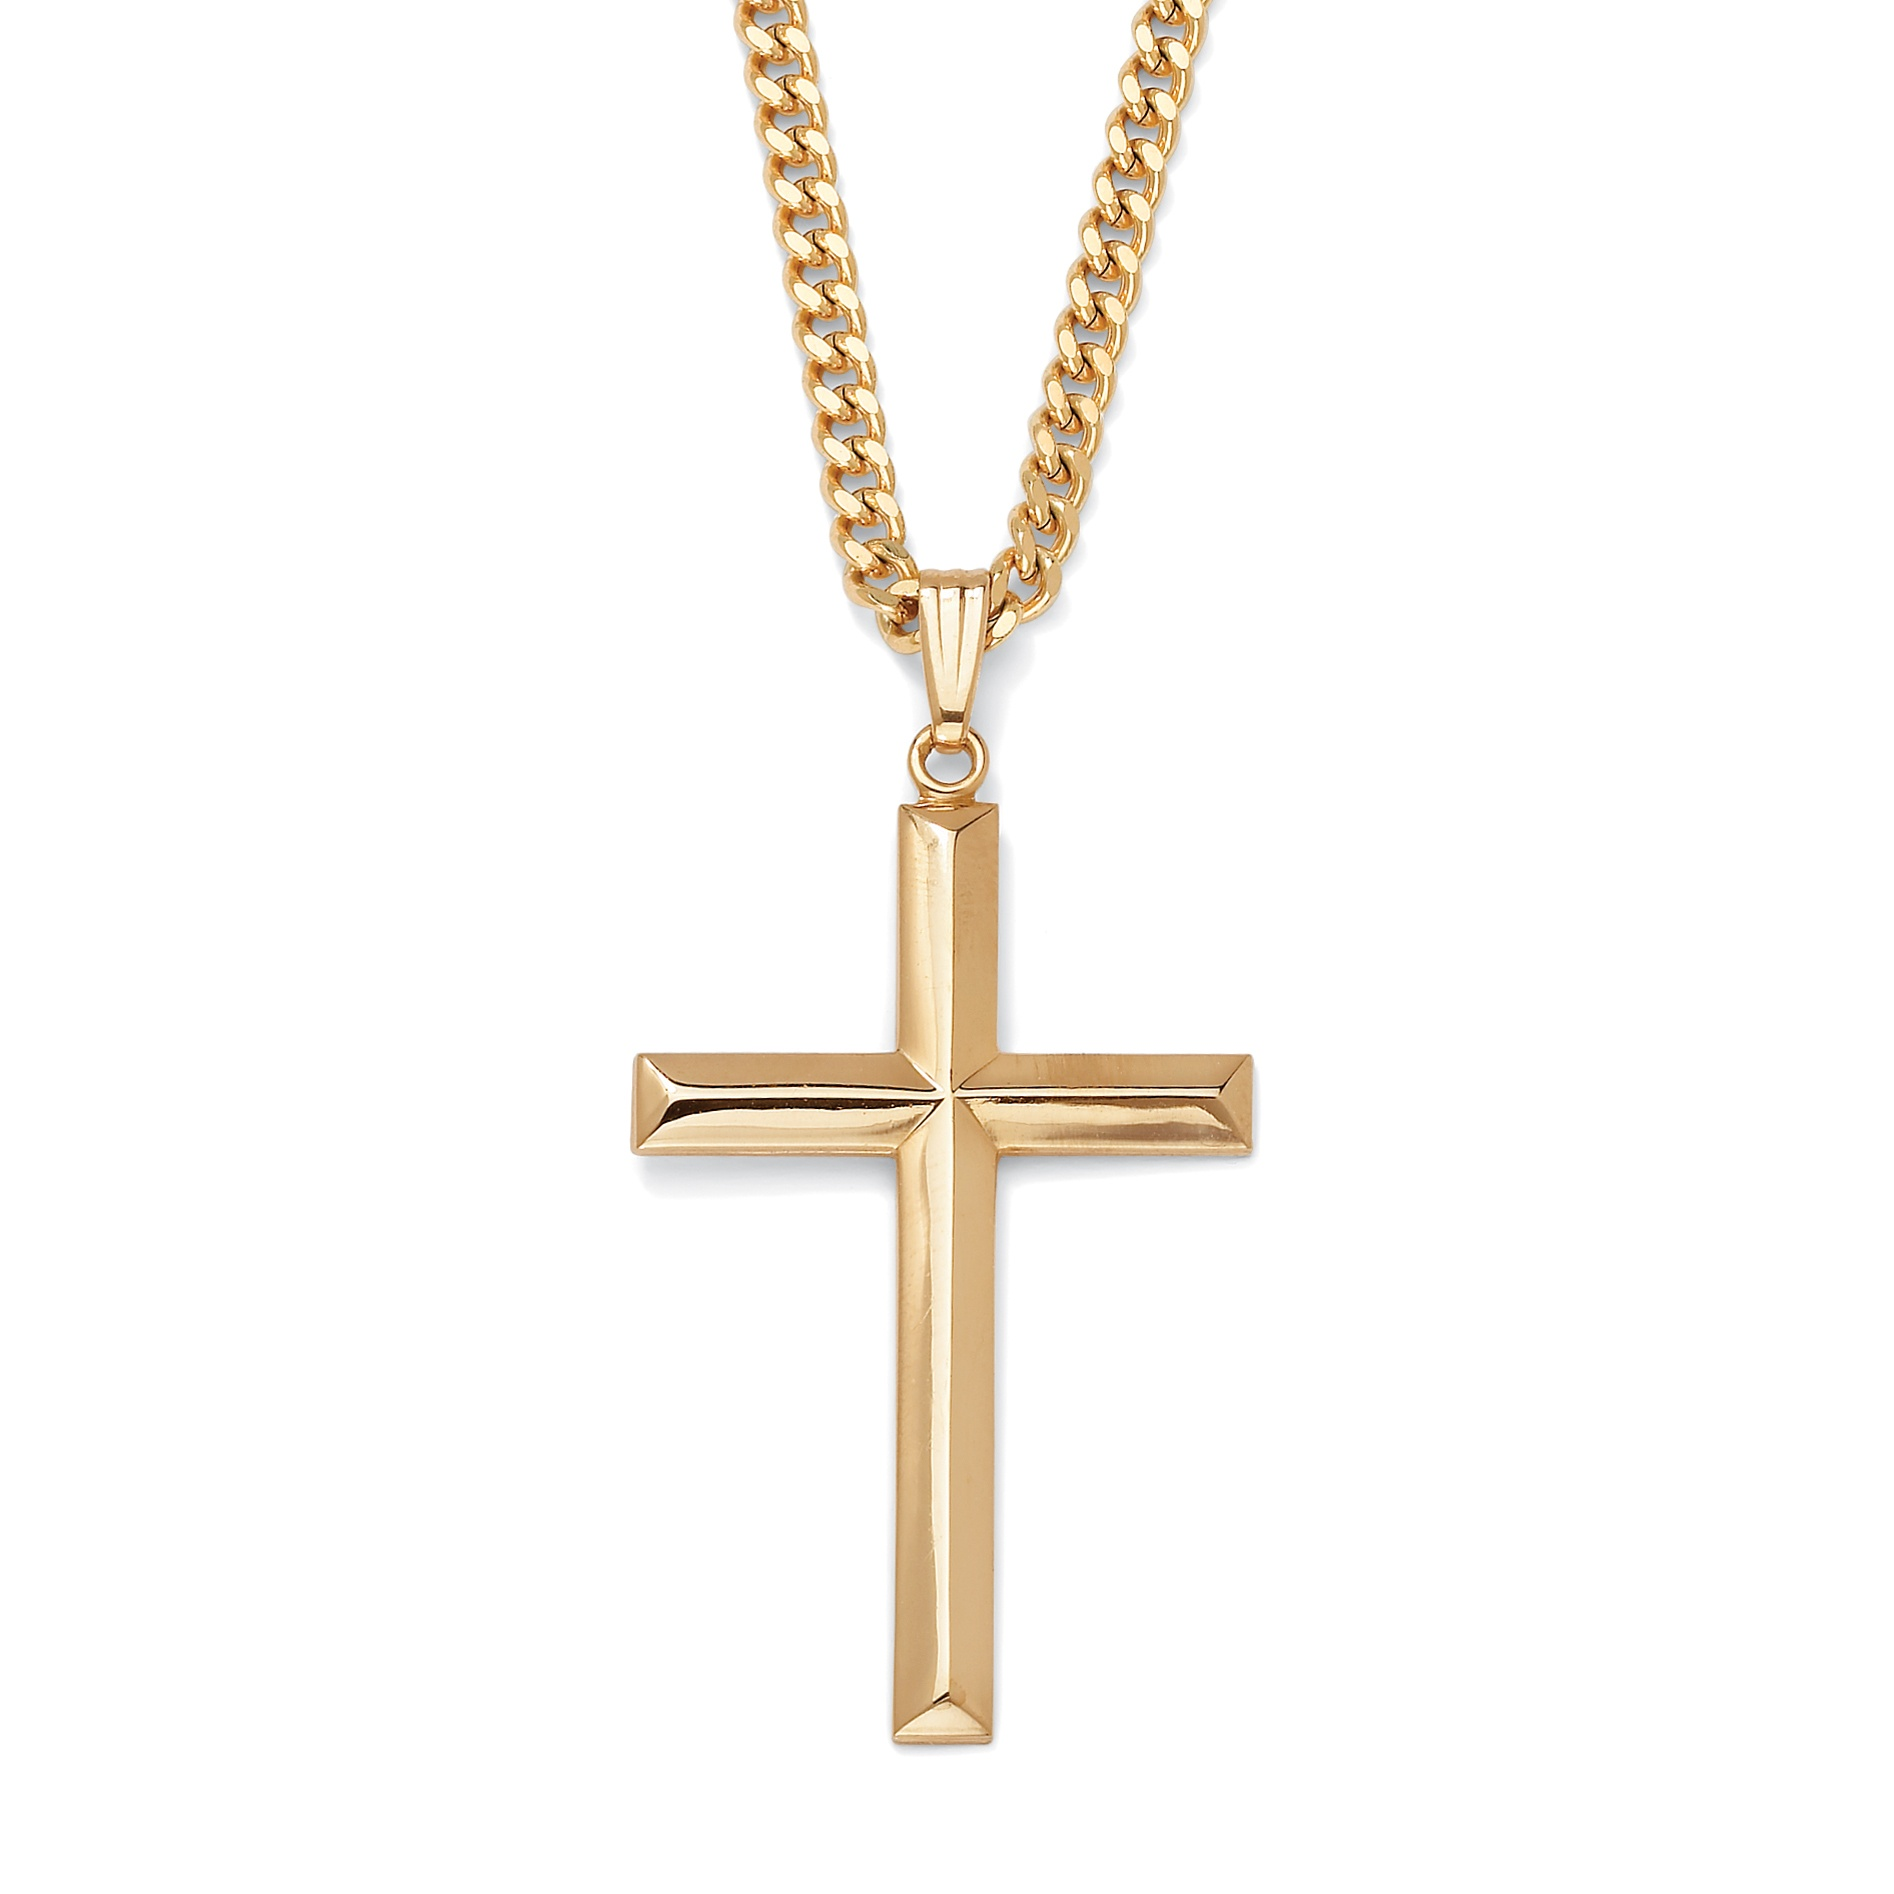 necklace double pages jewelry byzantine cross s chain spicyice box silver stainless pendant steel chains men reviews